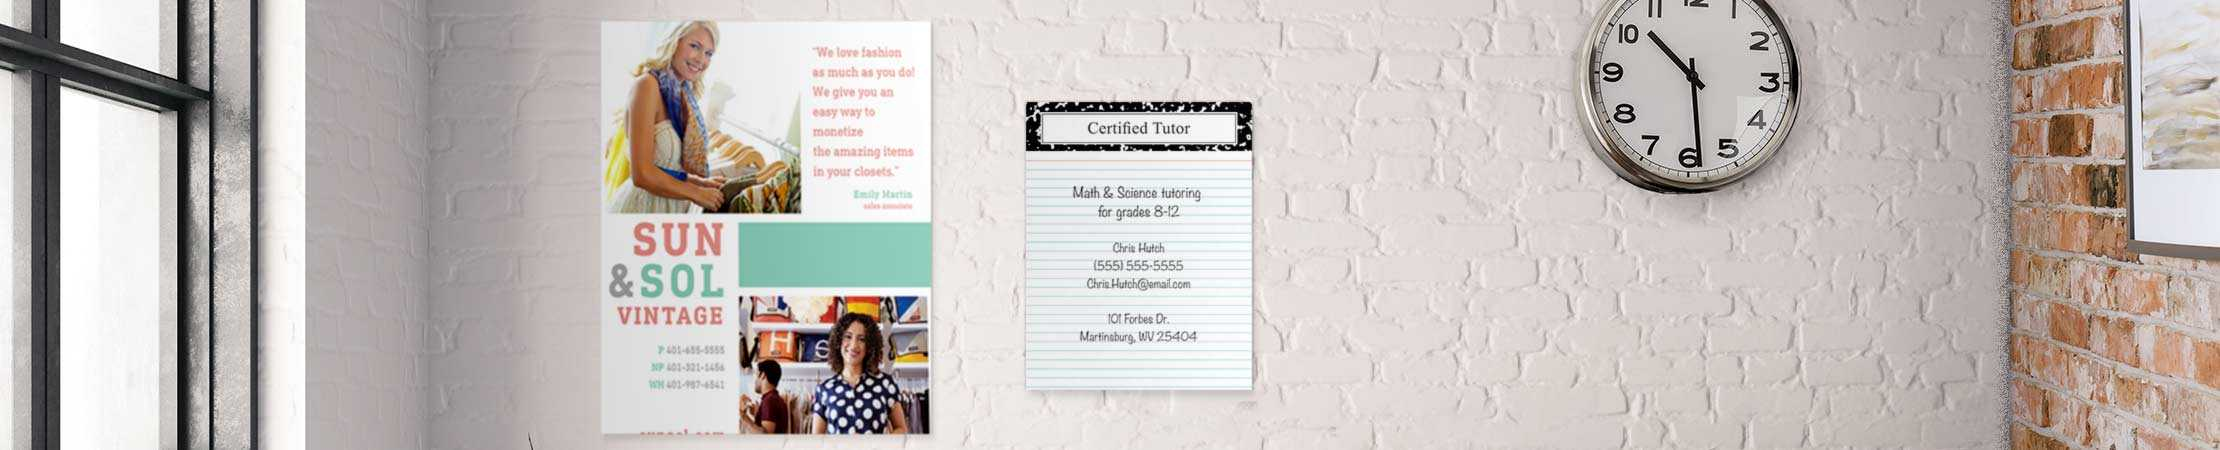 Adhesive Business Posters